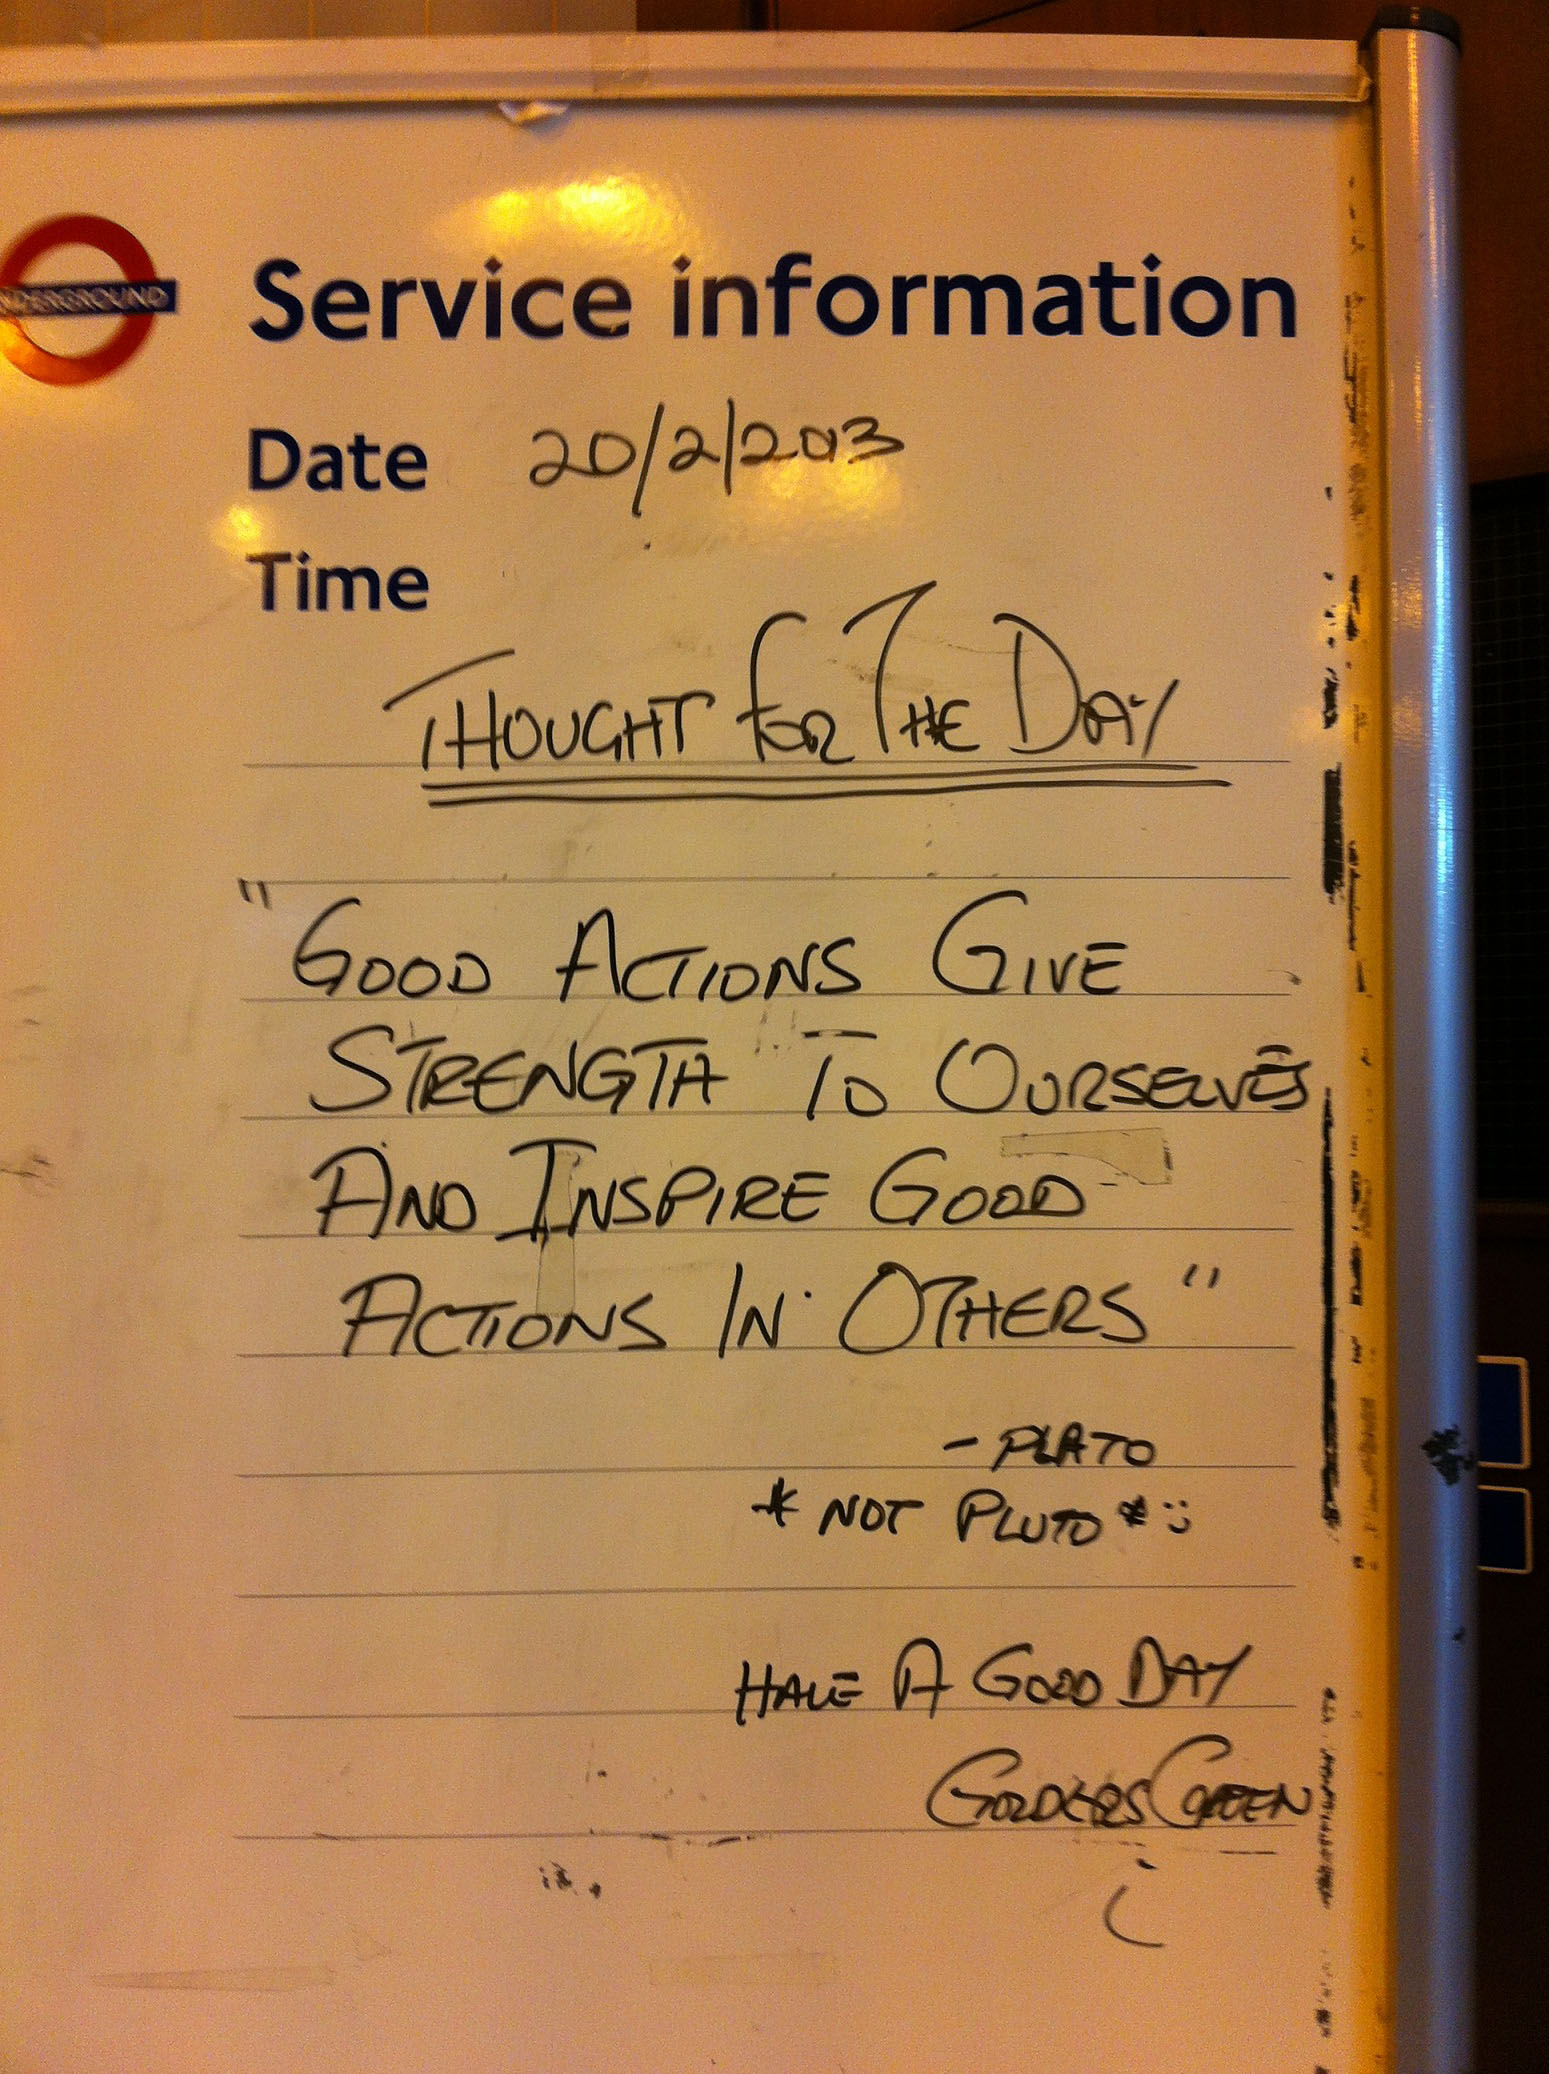 London Tube Service Information Message